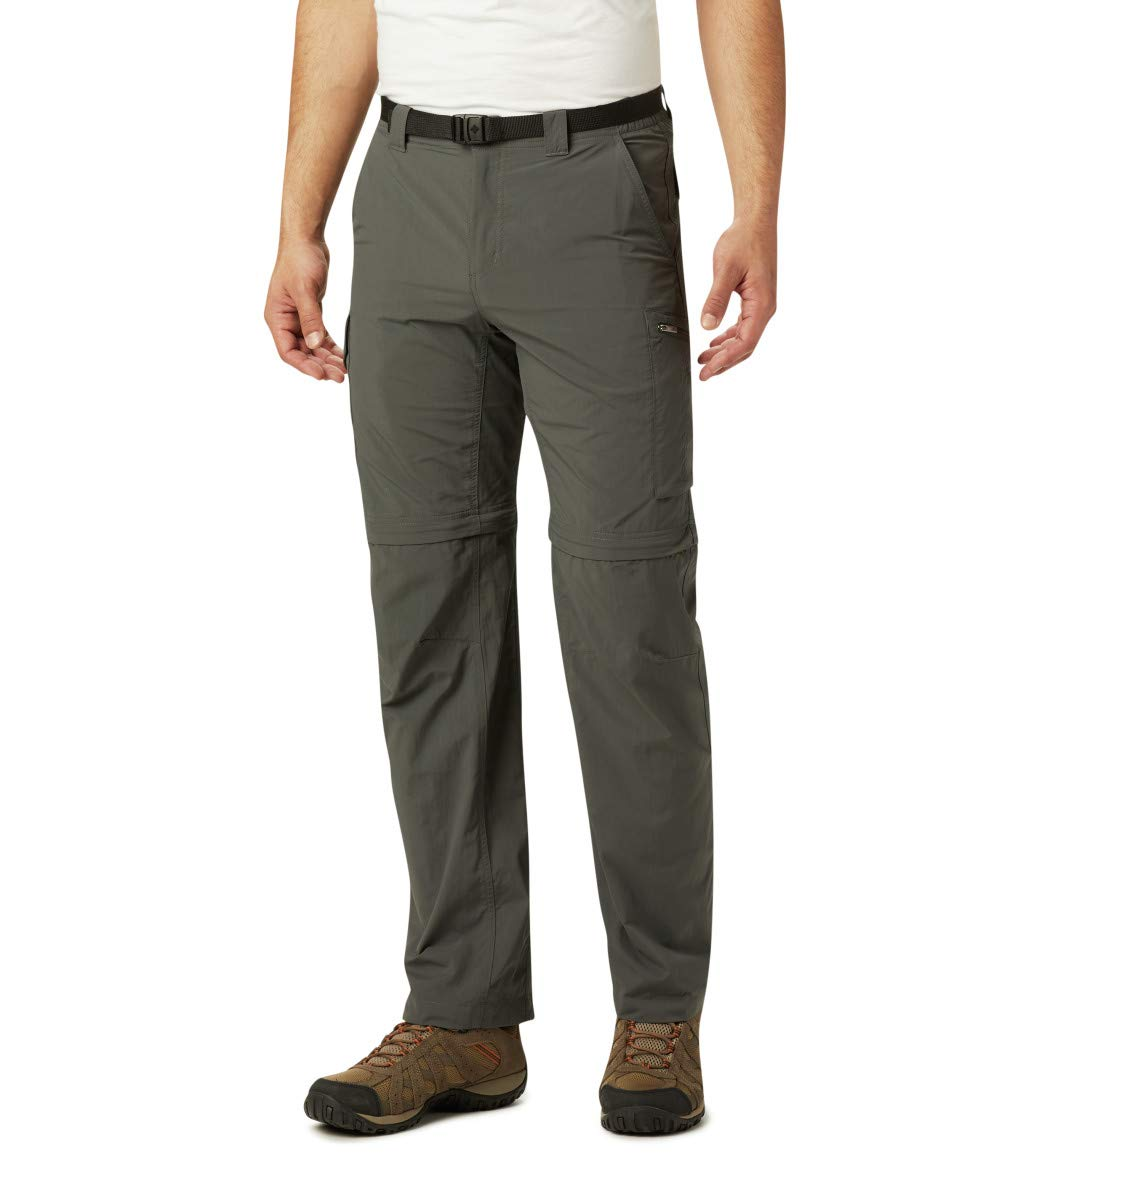 Columbia Men's Silver Ridge Convertible Pant, Breathable, UPF 50 Sun Protection, Grill, 32x30